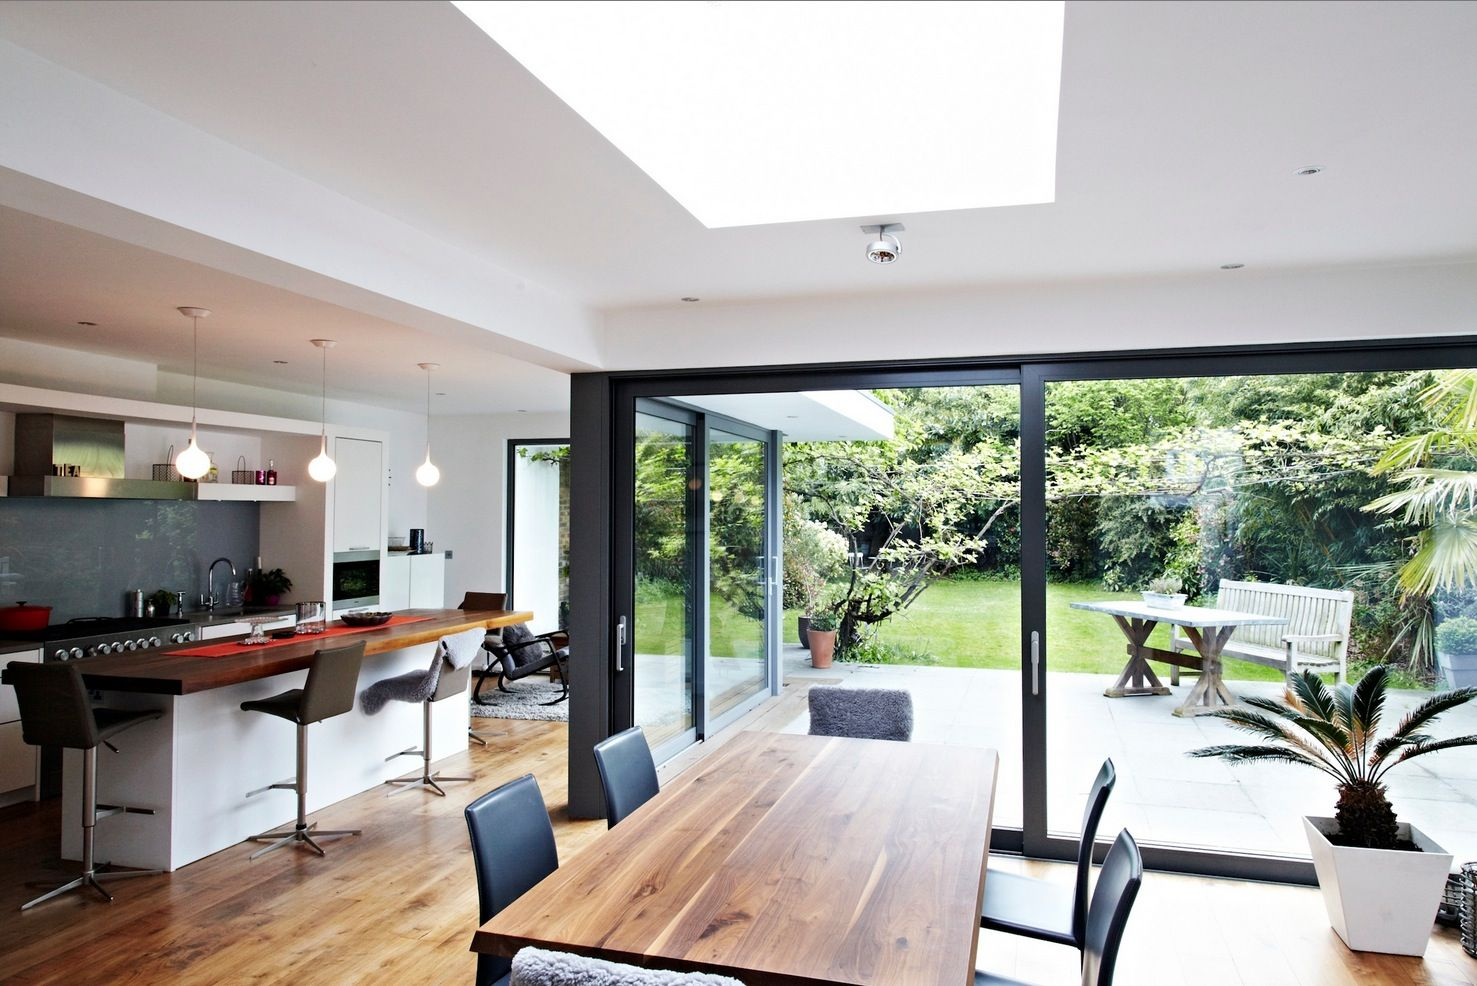 Living Room Extensions Interior Magnificent Httpcdn.homedesigningwpcontentuploads201308Kitchen . Inspiration Design